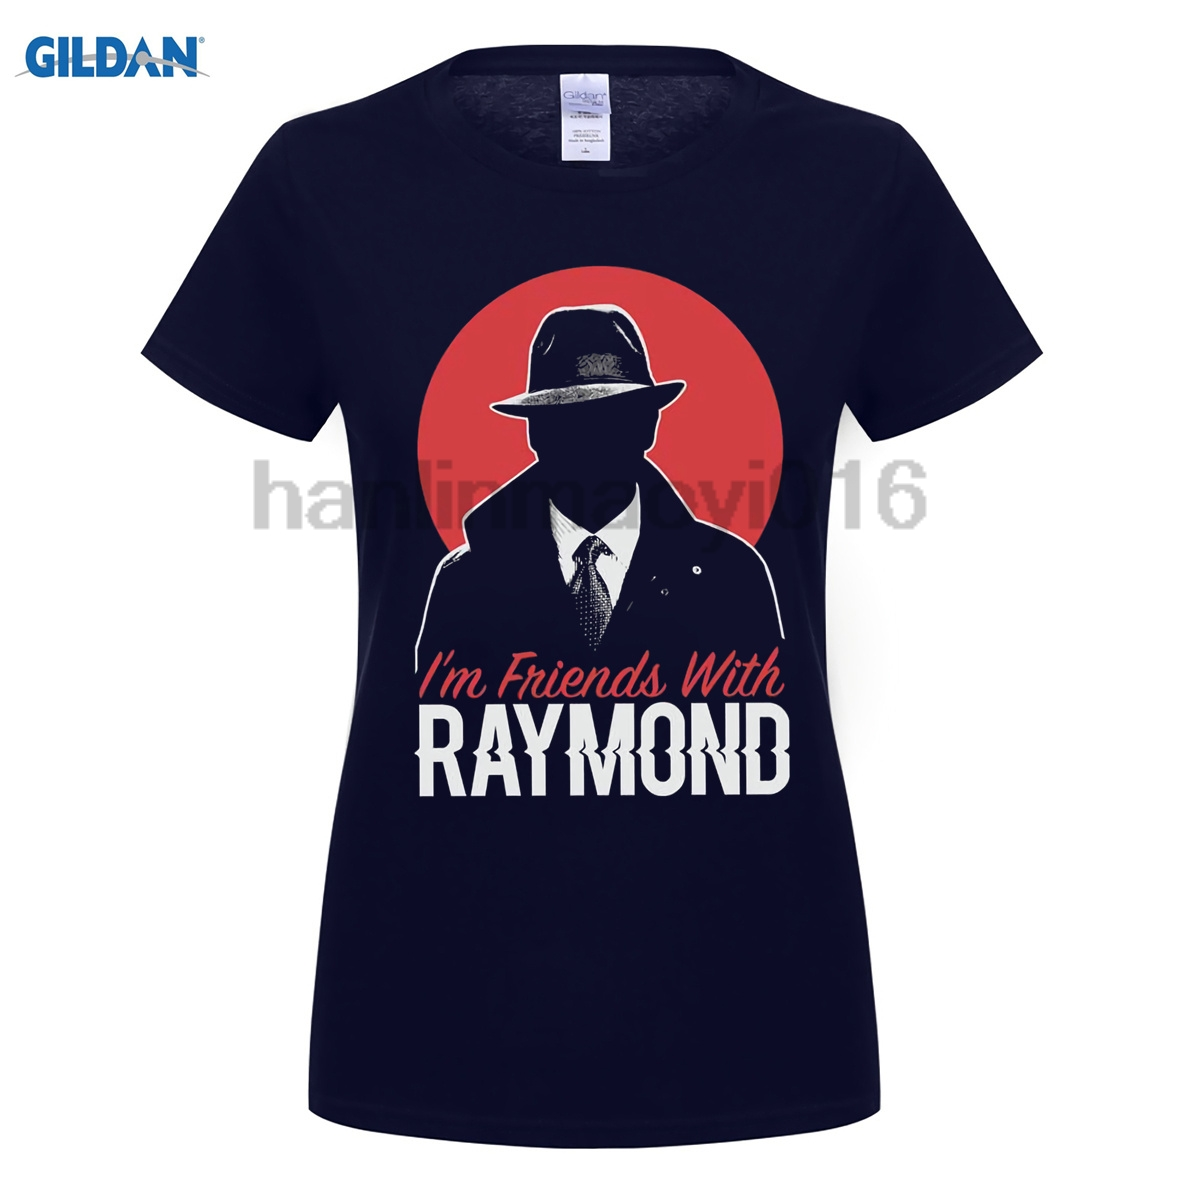 GILDAN 100% cotton O-neck printed T-shirt Blacklist T Shirt Im Friends With Raymond for men for women